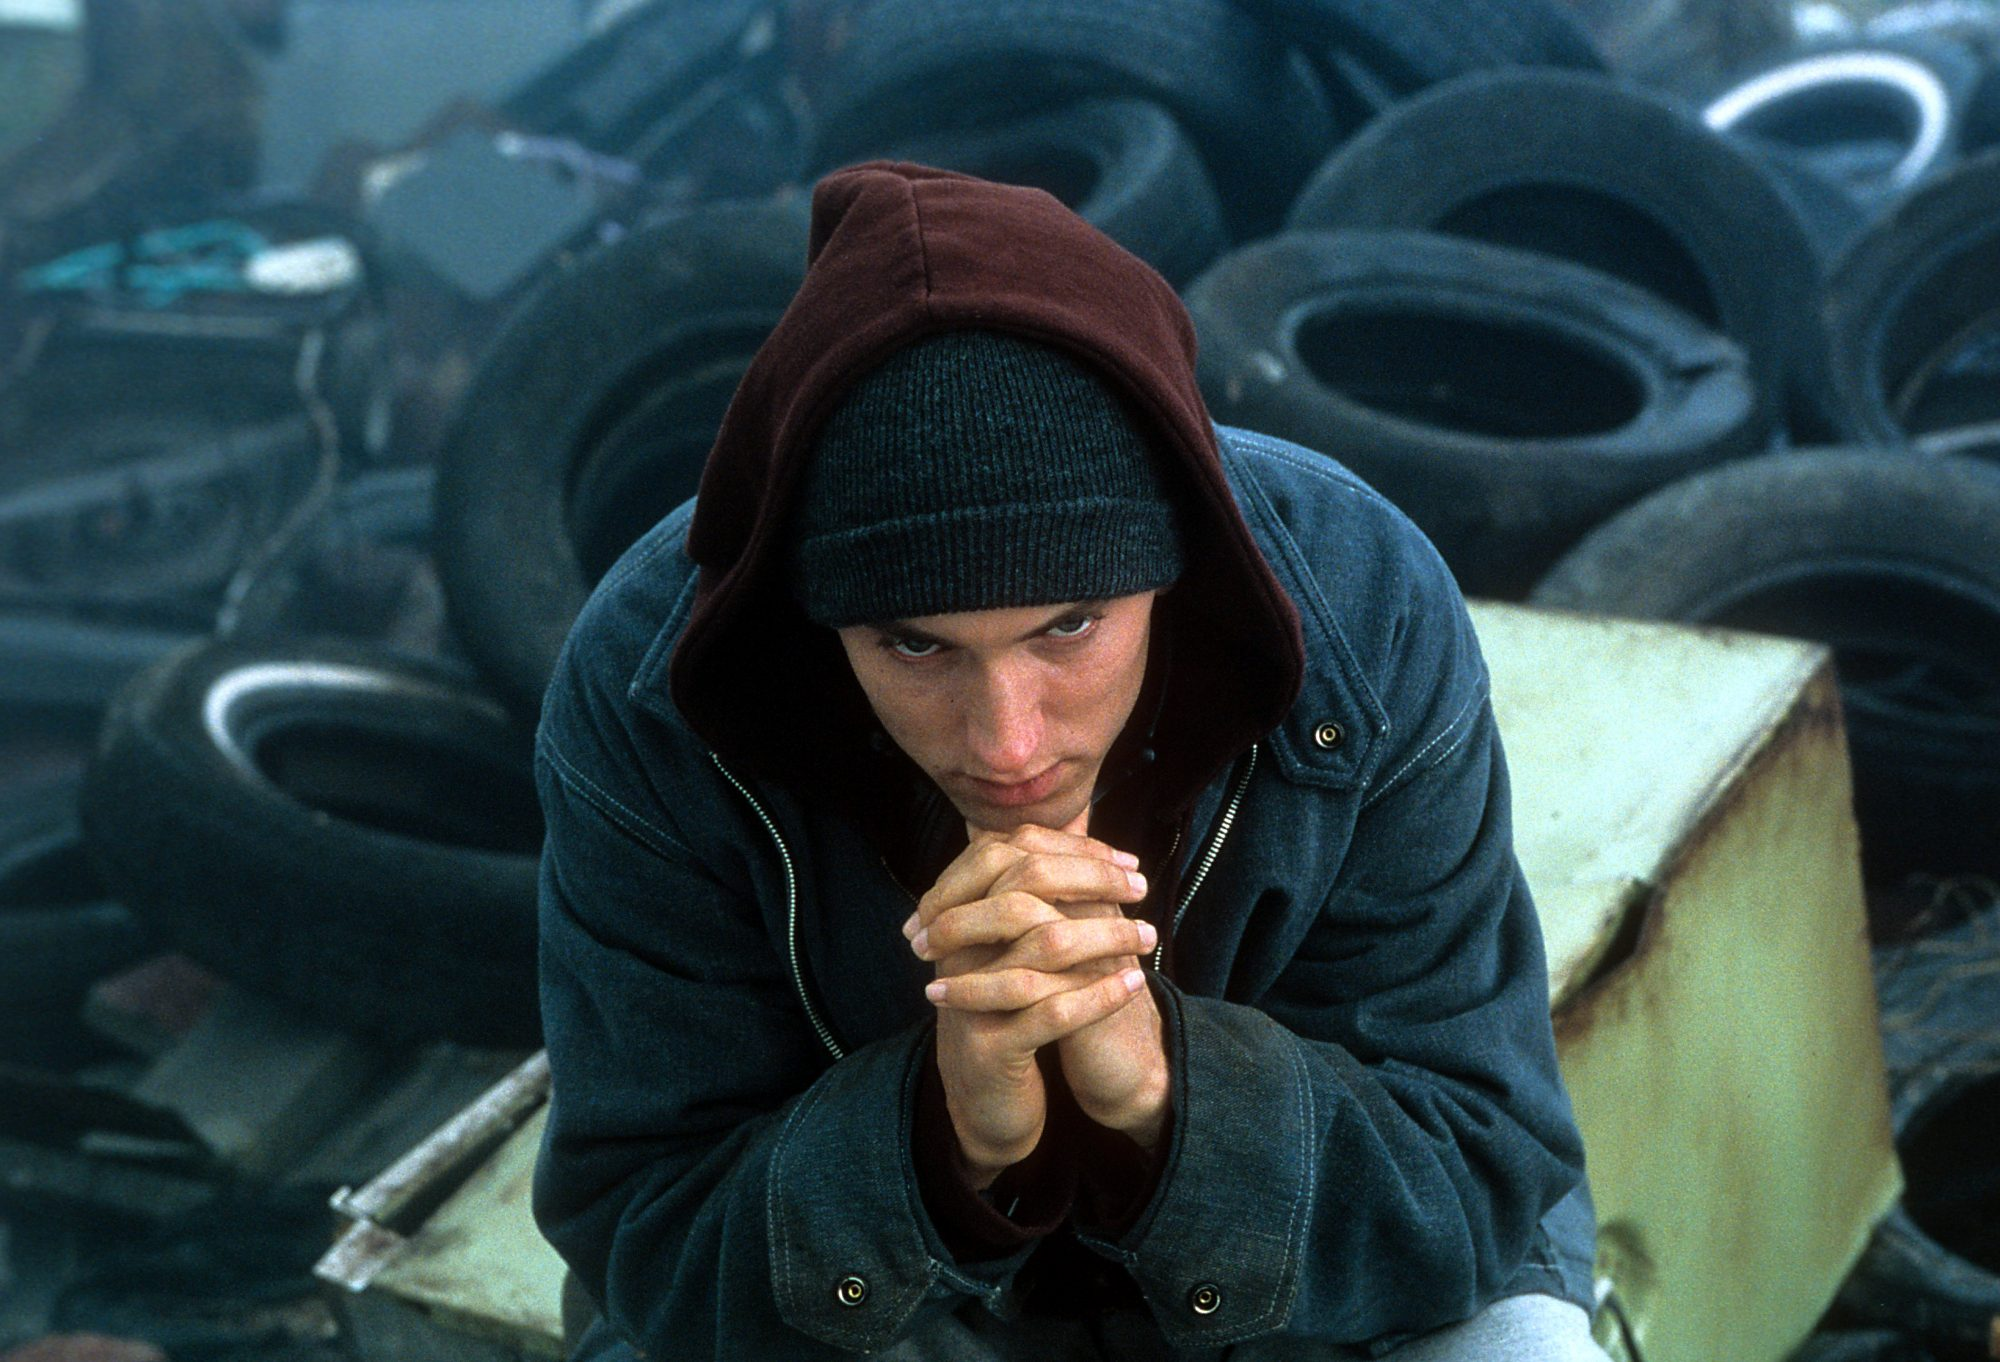 Netflix Rewrites the Plot of '8 Mile' to Be All About 'Mom's Spaghetti'